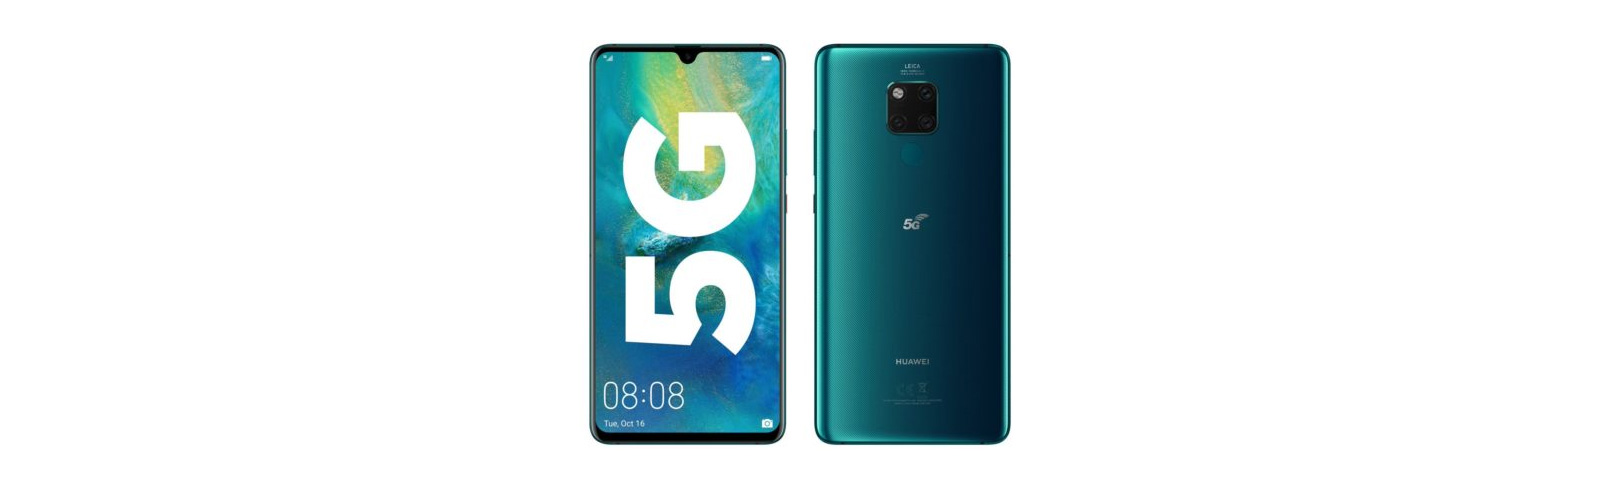 The first batch of Huawei Mate 20 X 5G units sold out in several minutes